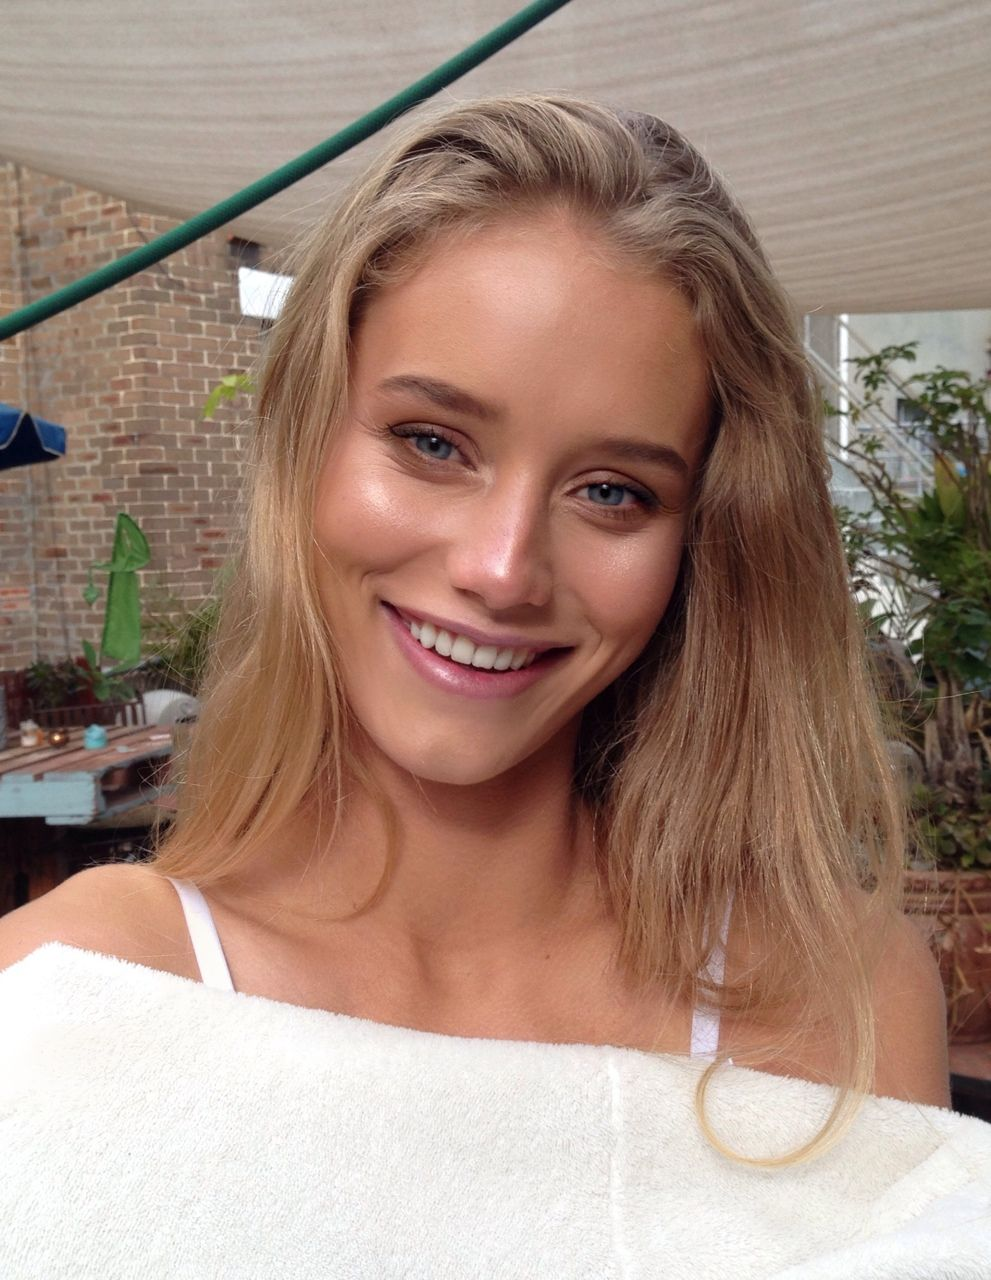 Celebrity Chase Carter nudes (49 photos), Topless, Cleavage, Instagram, underwear 2017